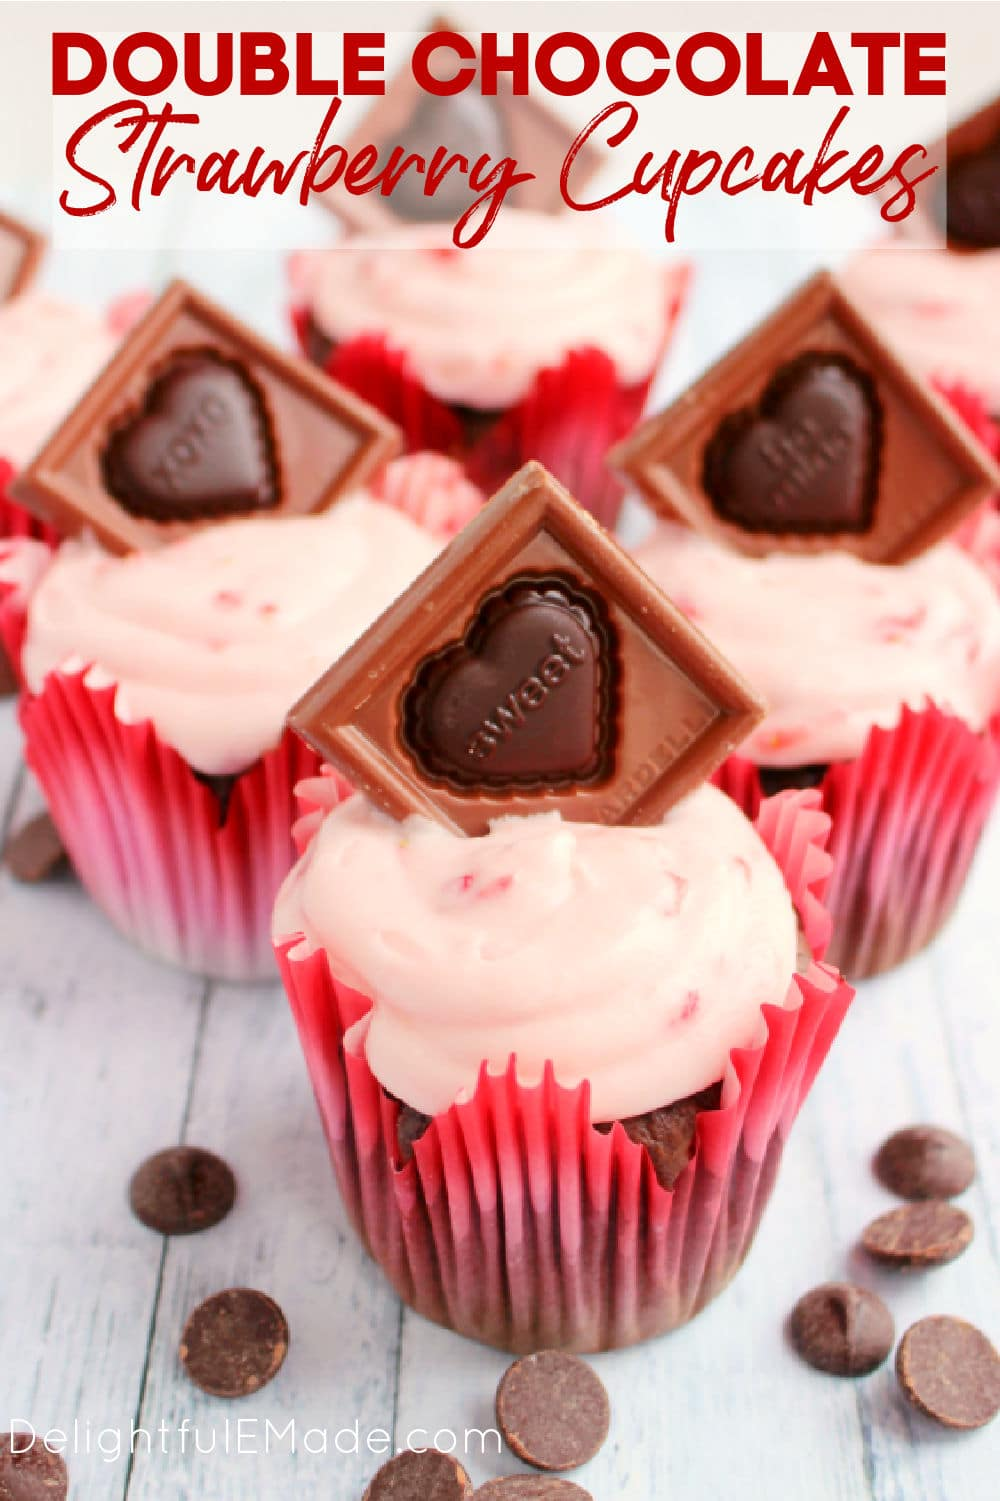 Double Chocolate cupcakes with strawberry frosting are the perfect Valentine's Day cupcakes recipe.